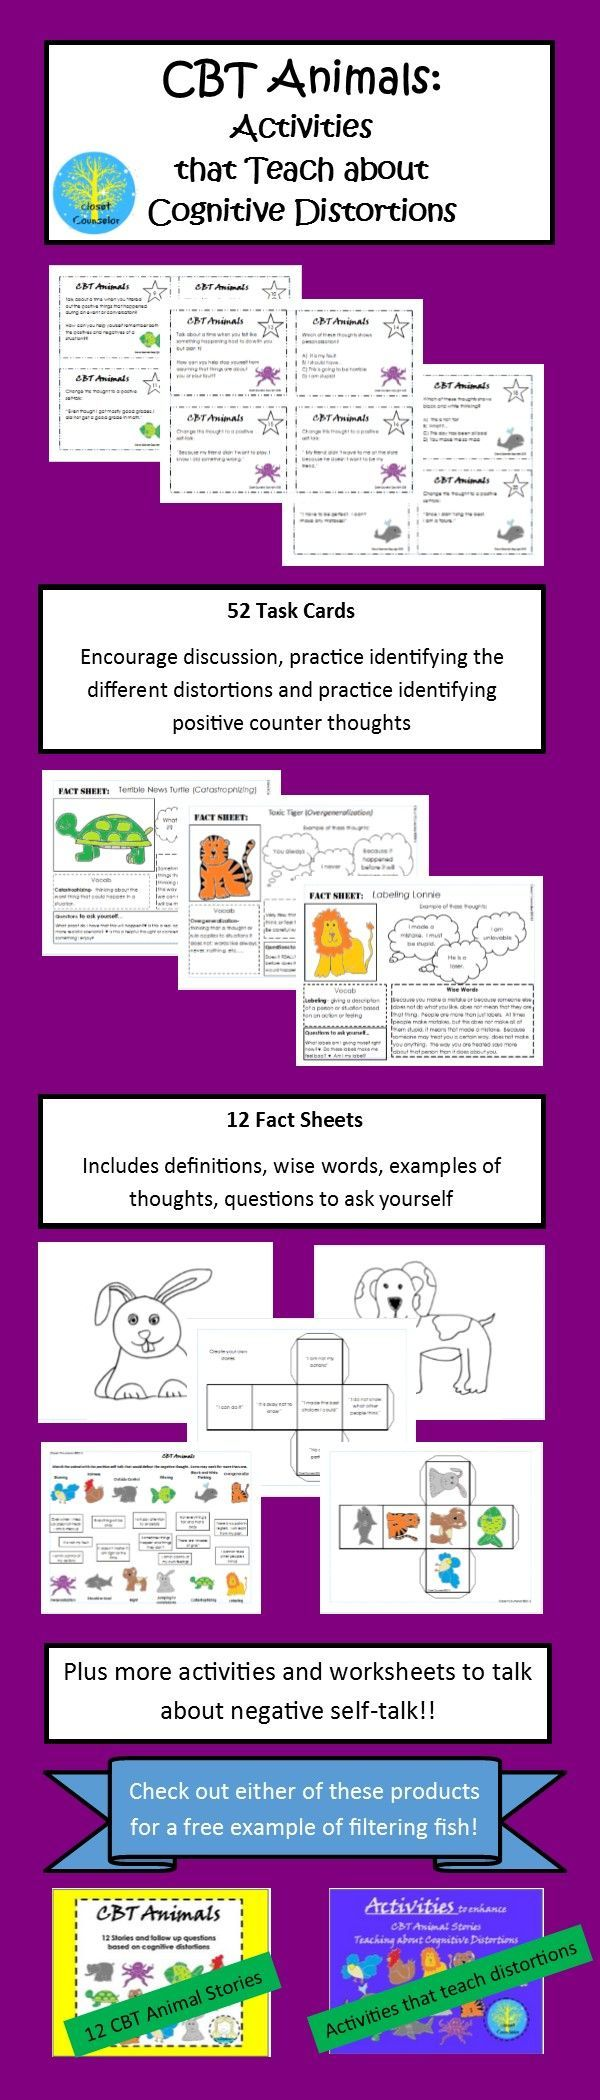 Worksheets Cognitive Distortions Worksheet the 25 best cognitive distortions worksheet ideas on pinterest as a follow up to successful cbt animals stories that teach distortions